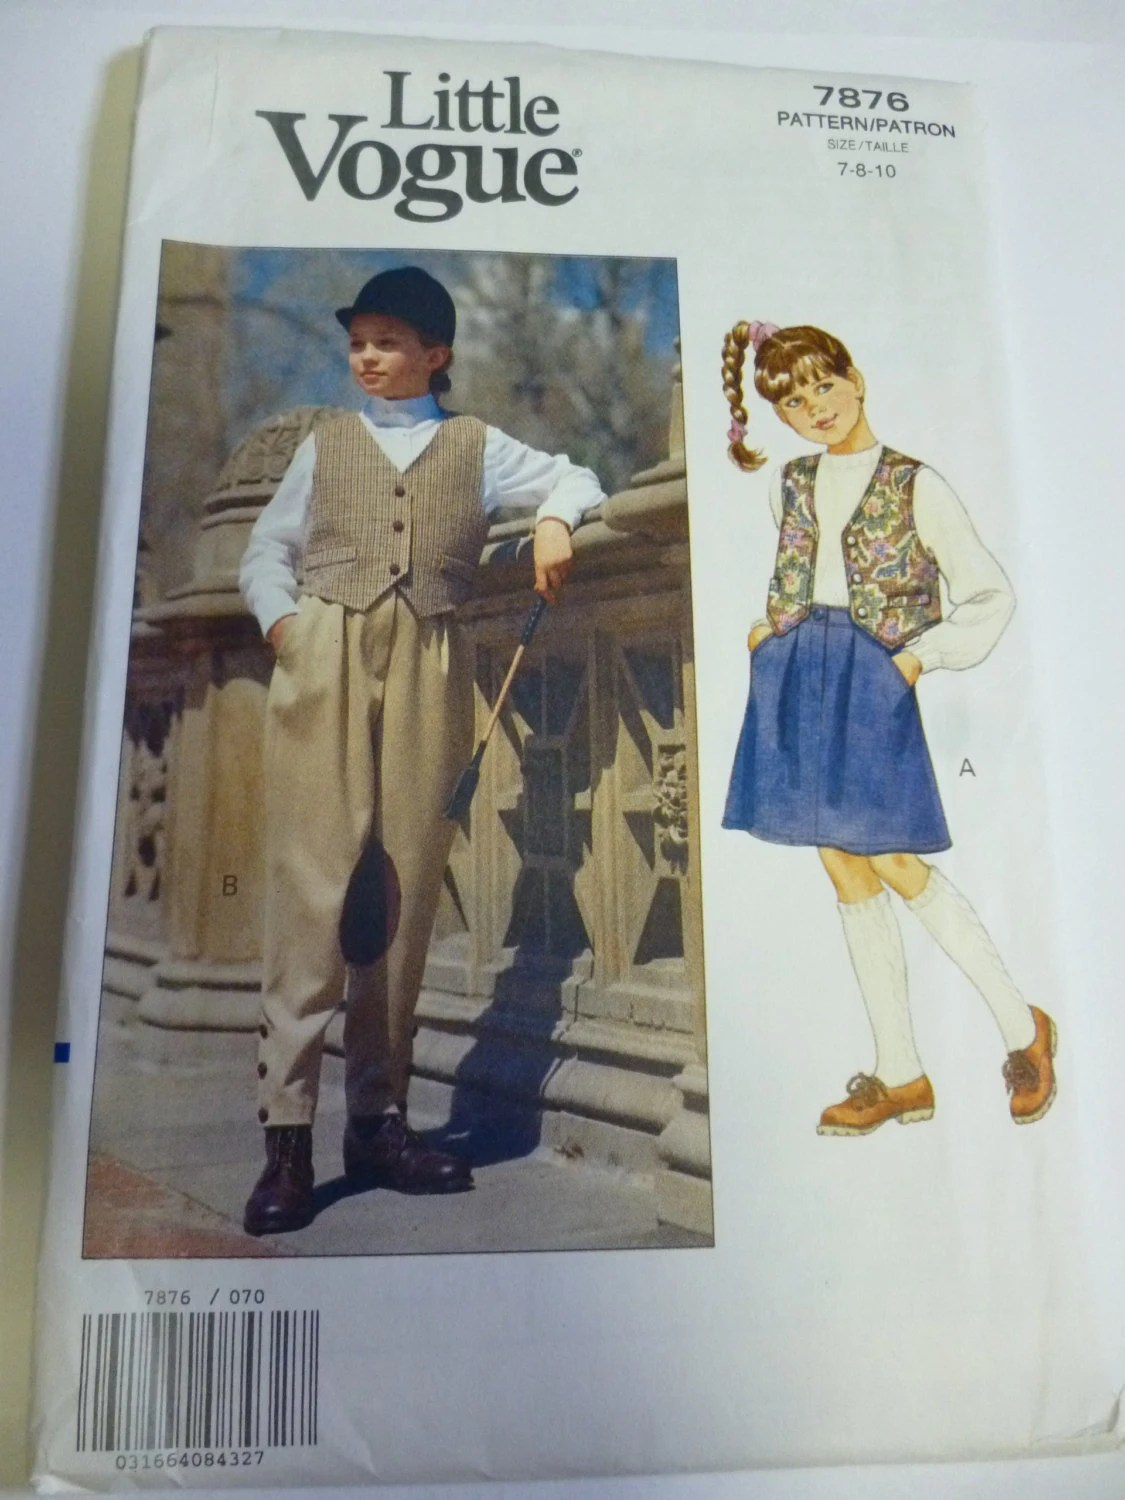 1990s girl's equestrian/jodhpurs pattern - Little Vogue 7876